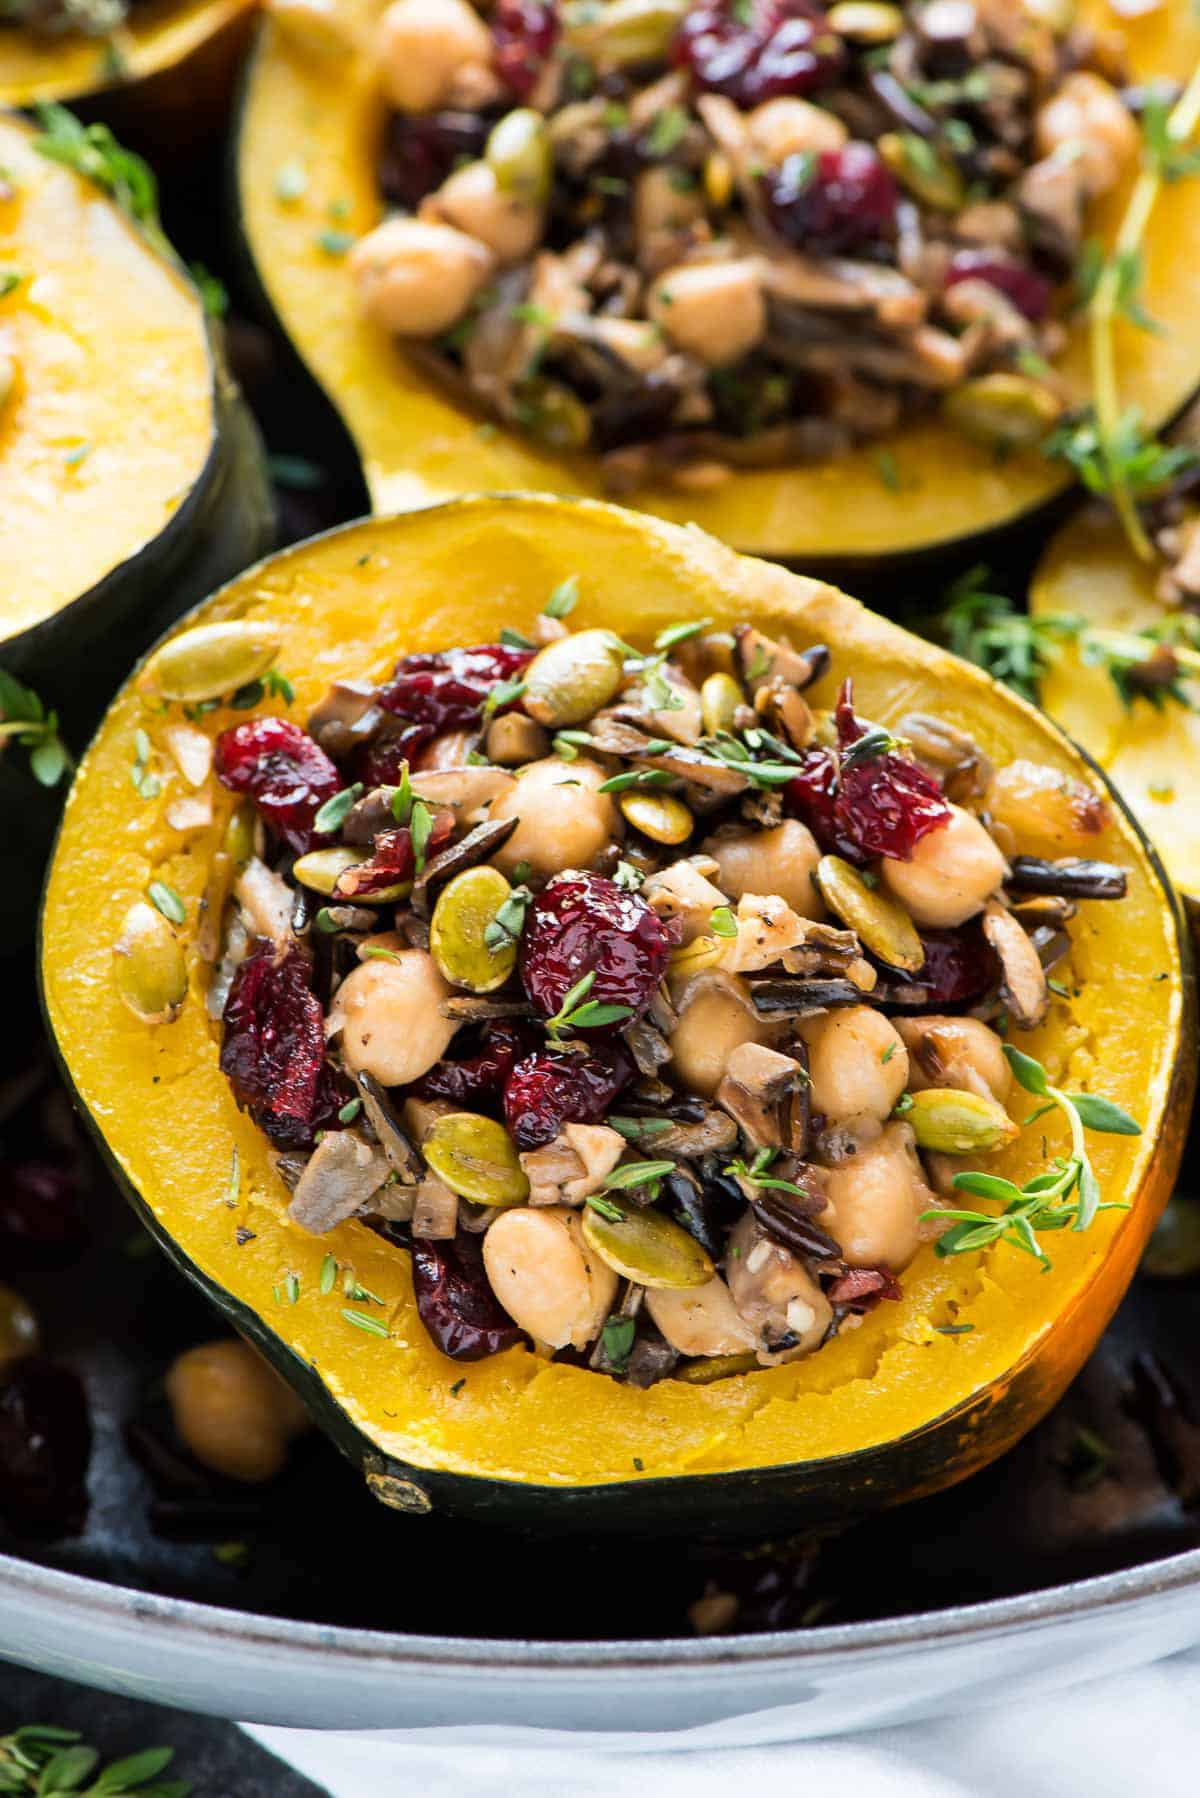 Wild Rice Cranberry Stuffed Acorn Squash made quick and easy in the Instant Pot